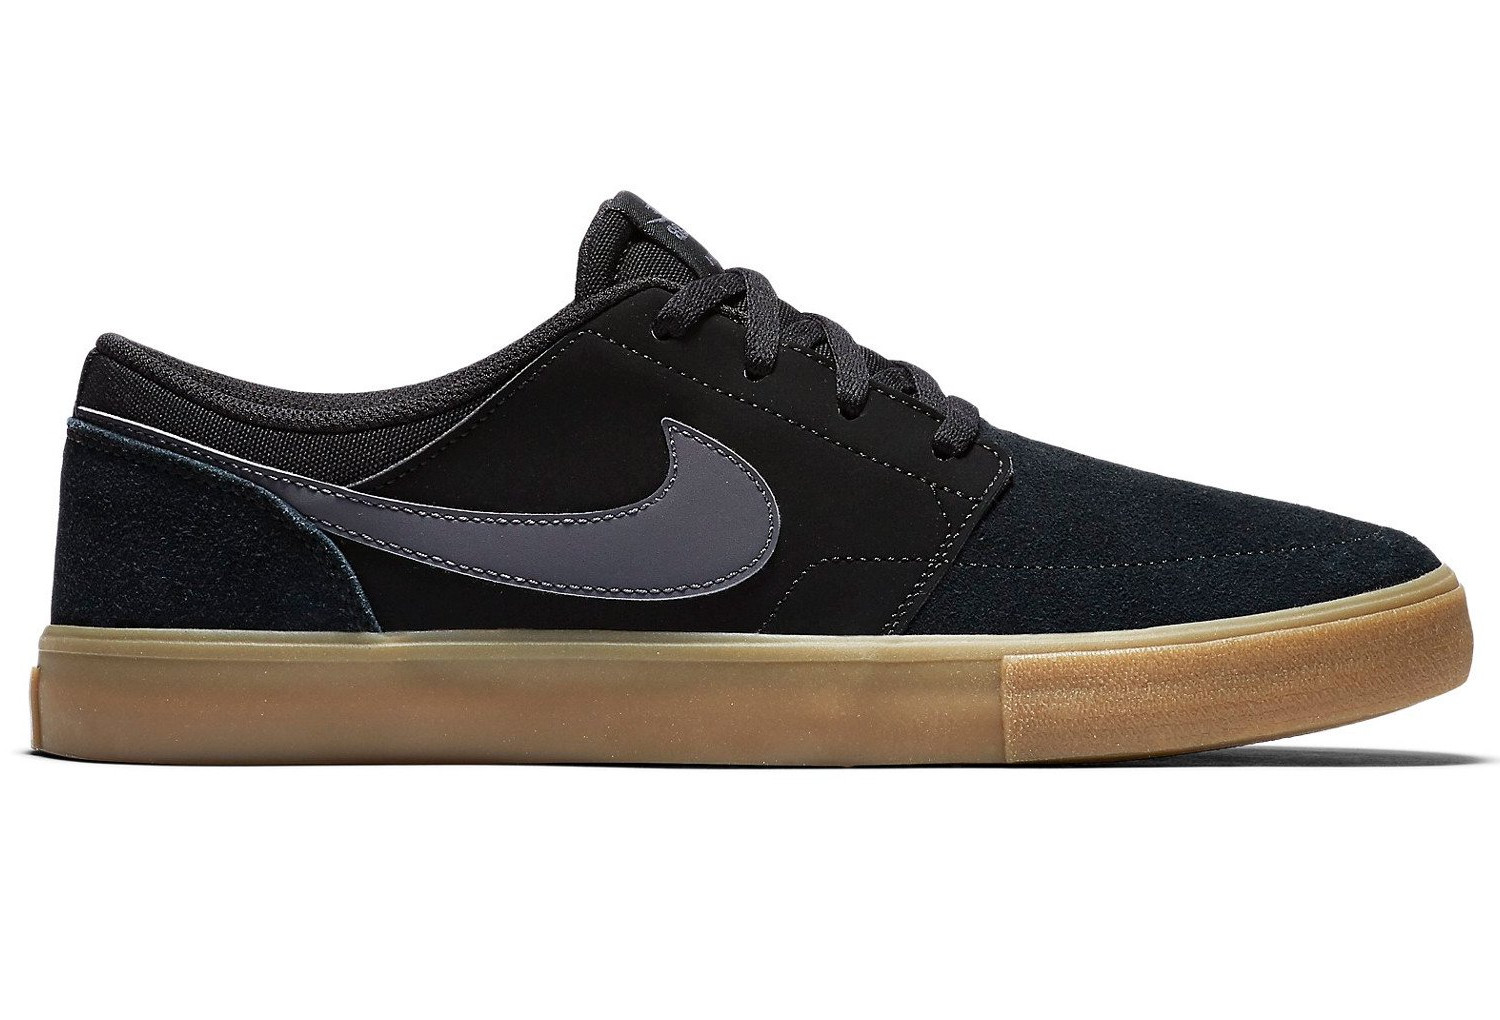 unique design fashion styles good quality Nike SB Solarsoft Portmore II Shoes Black Gum